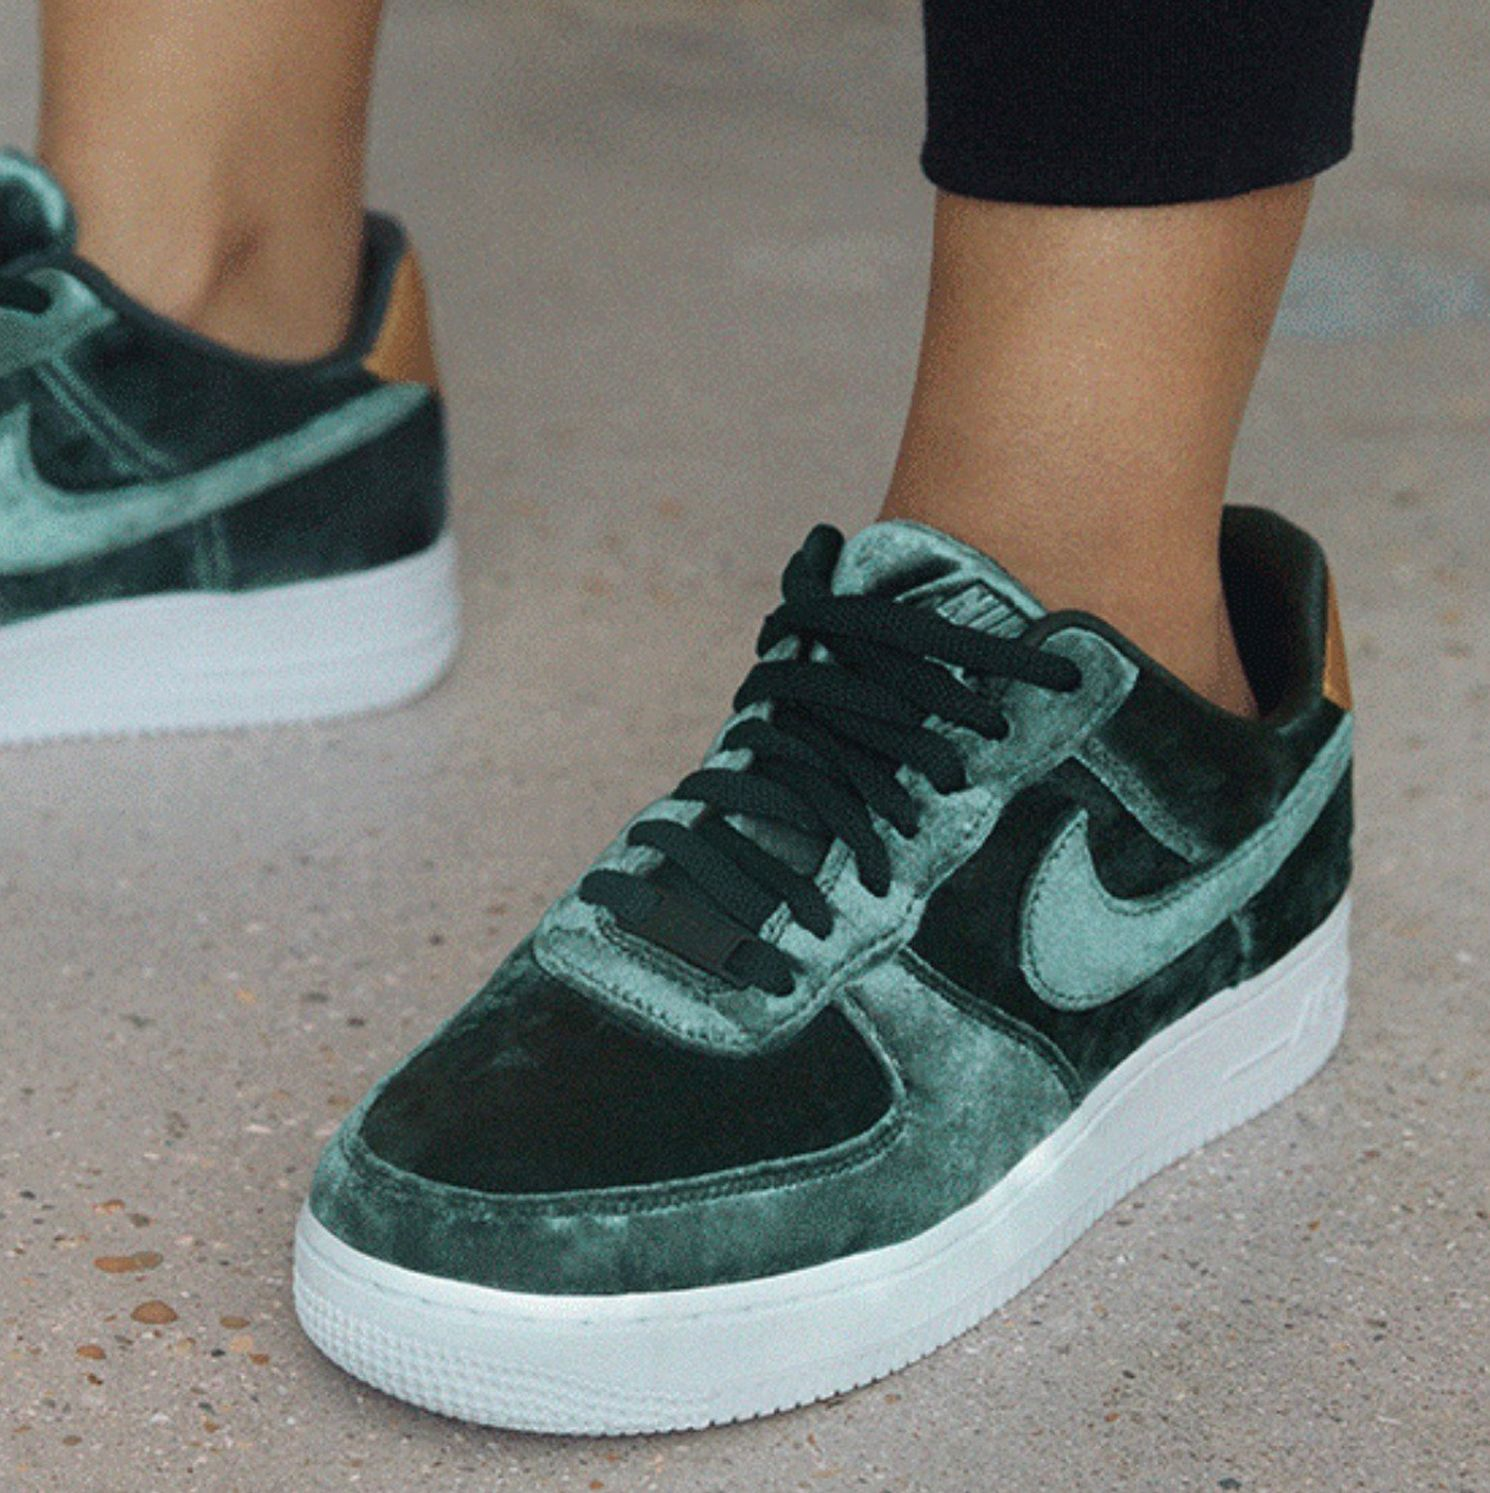 new style aa2fb 9b414 Sneakers women - Nike Air Force 1 velvet green